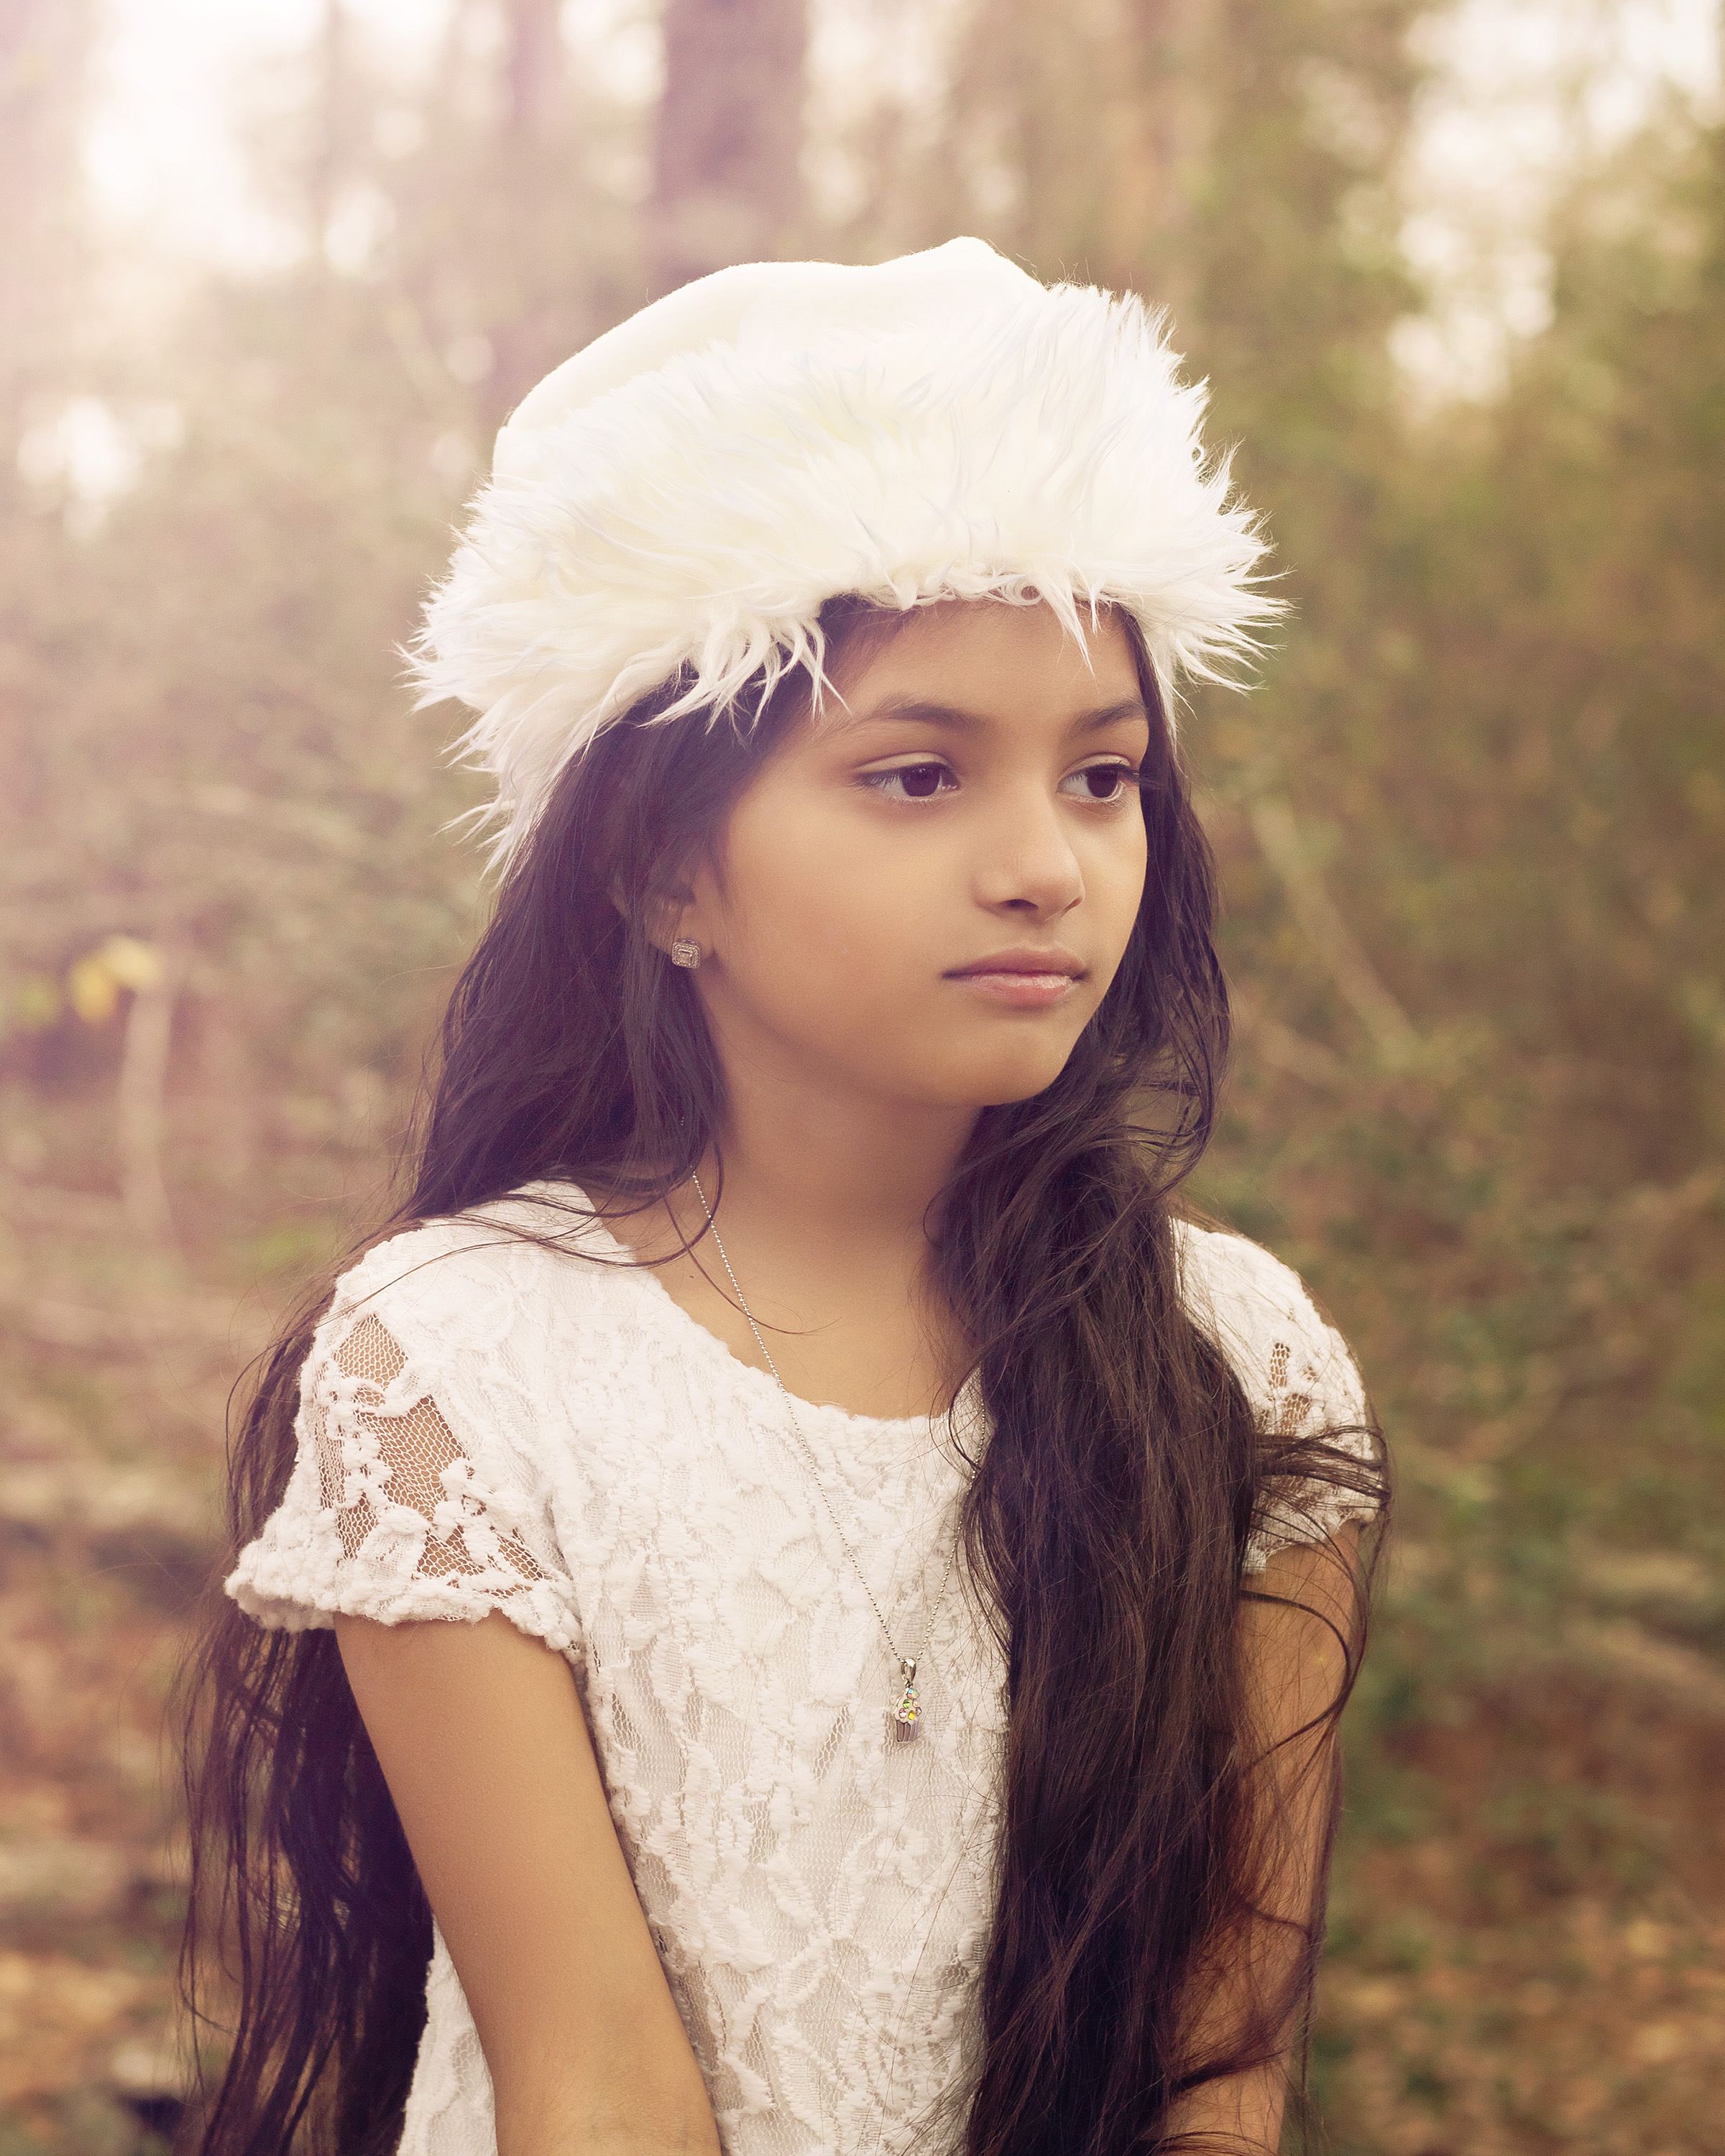 Young girl dressed in white